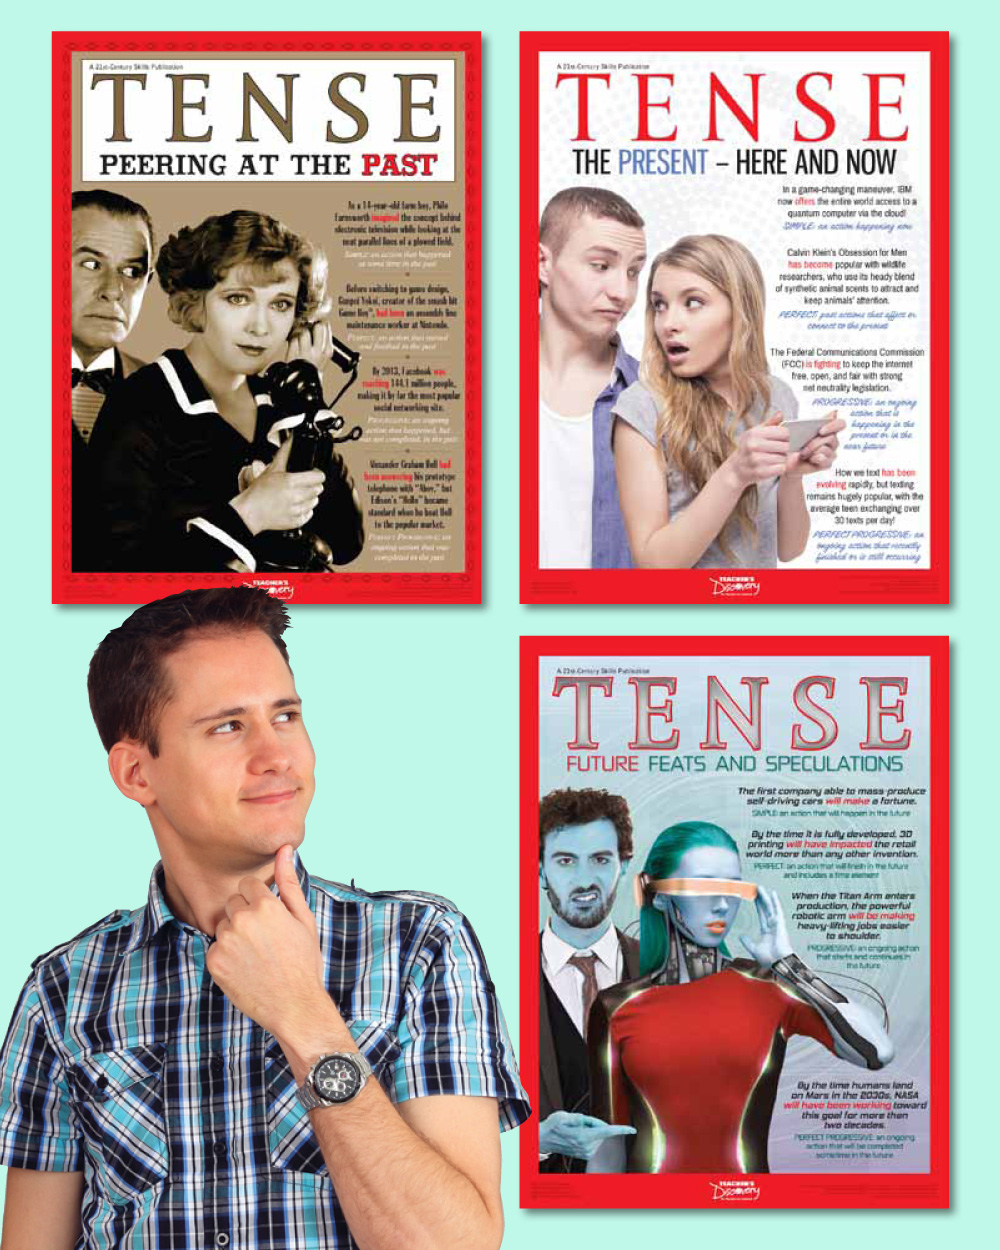 Verb Tense Poster Set of 3 Posters